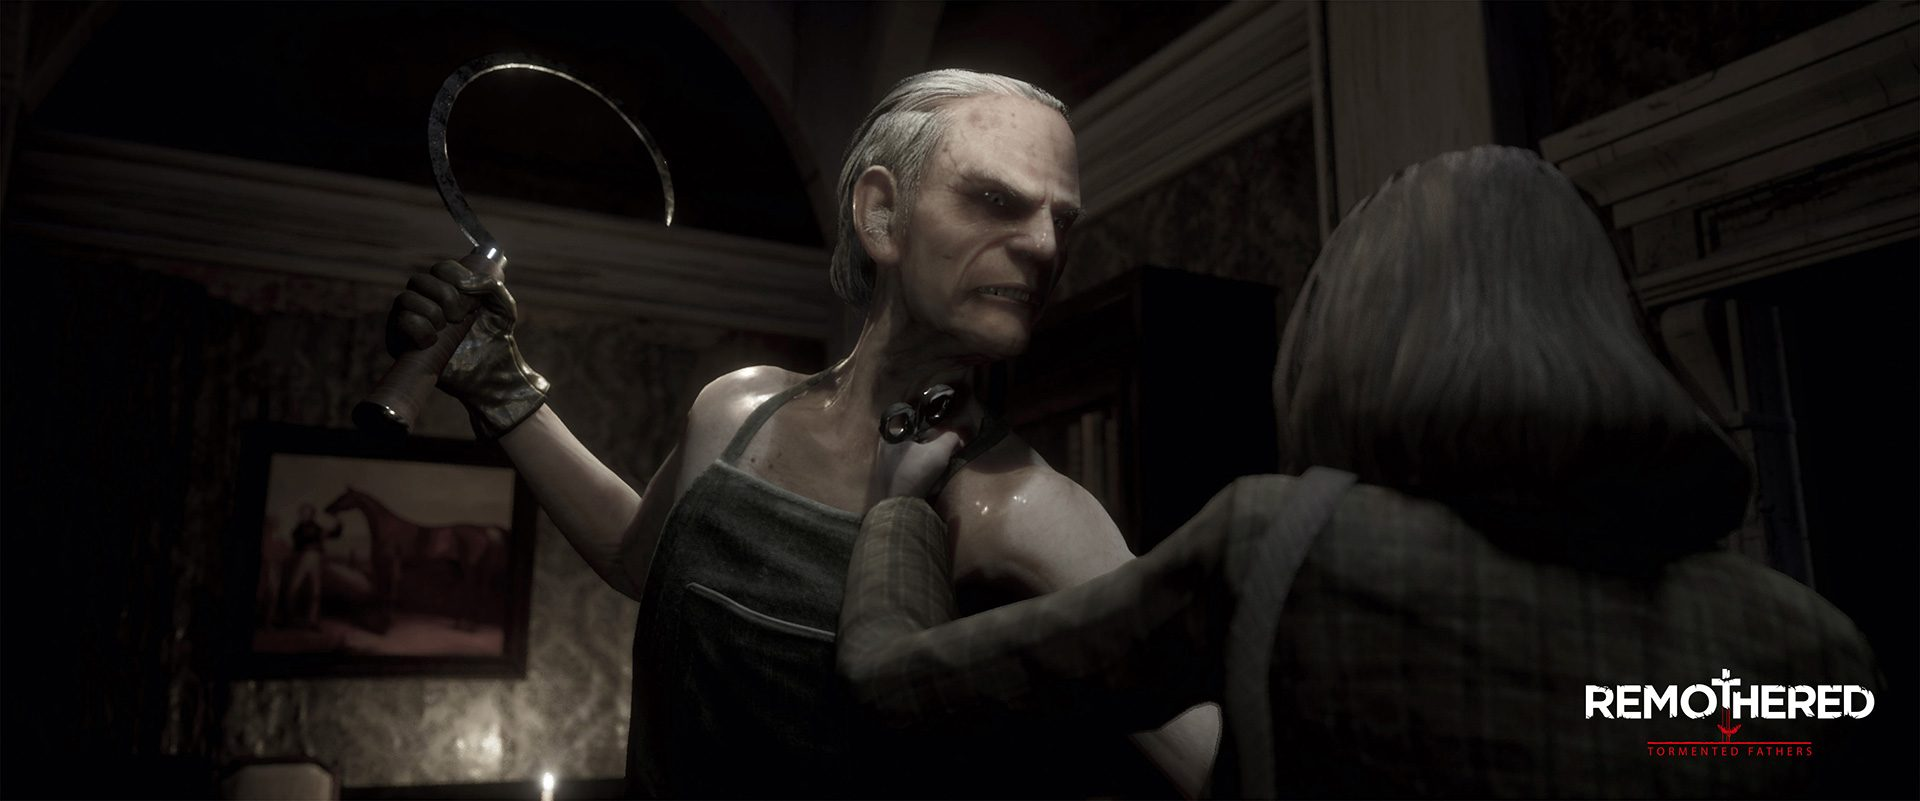 Remothered-Tormented-Fathers-2.jpg